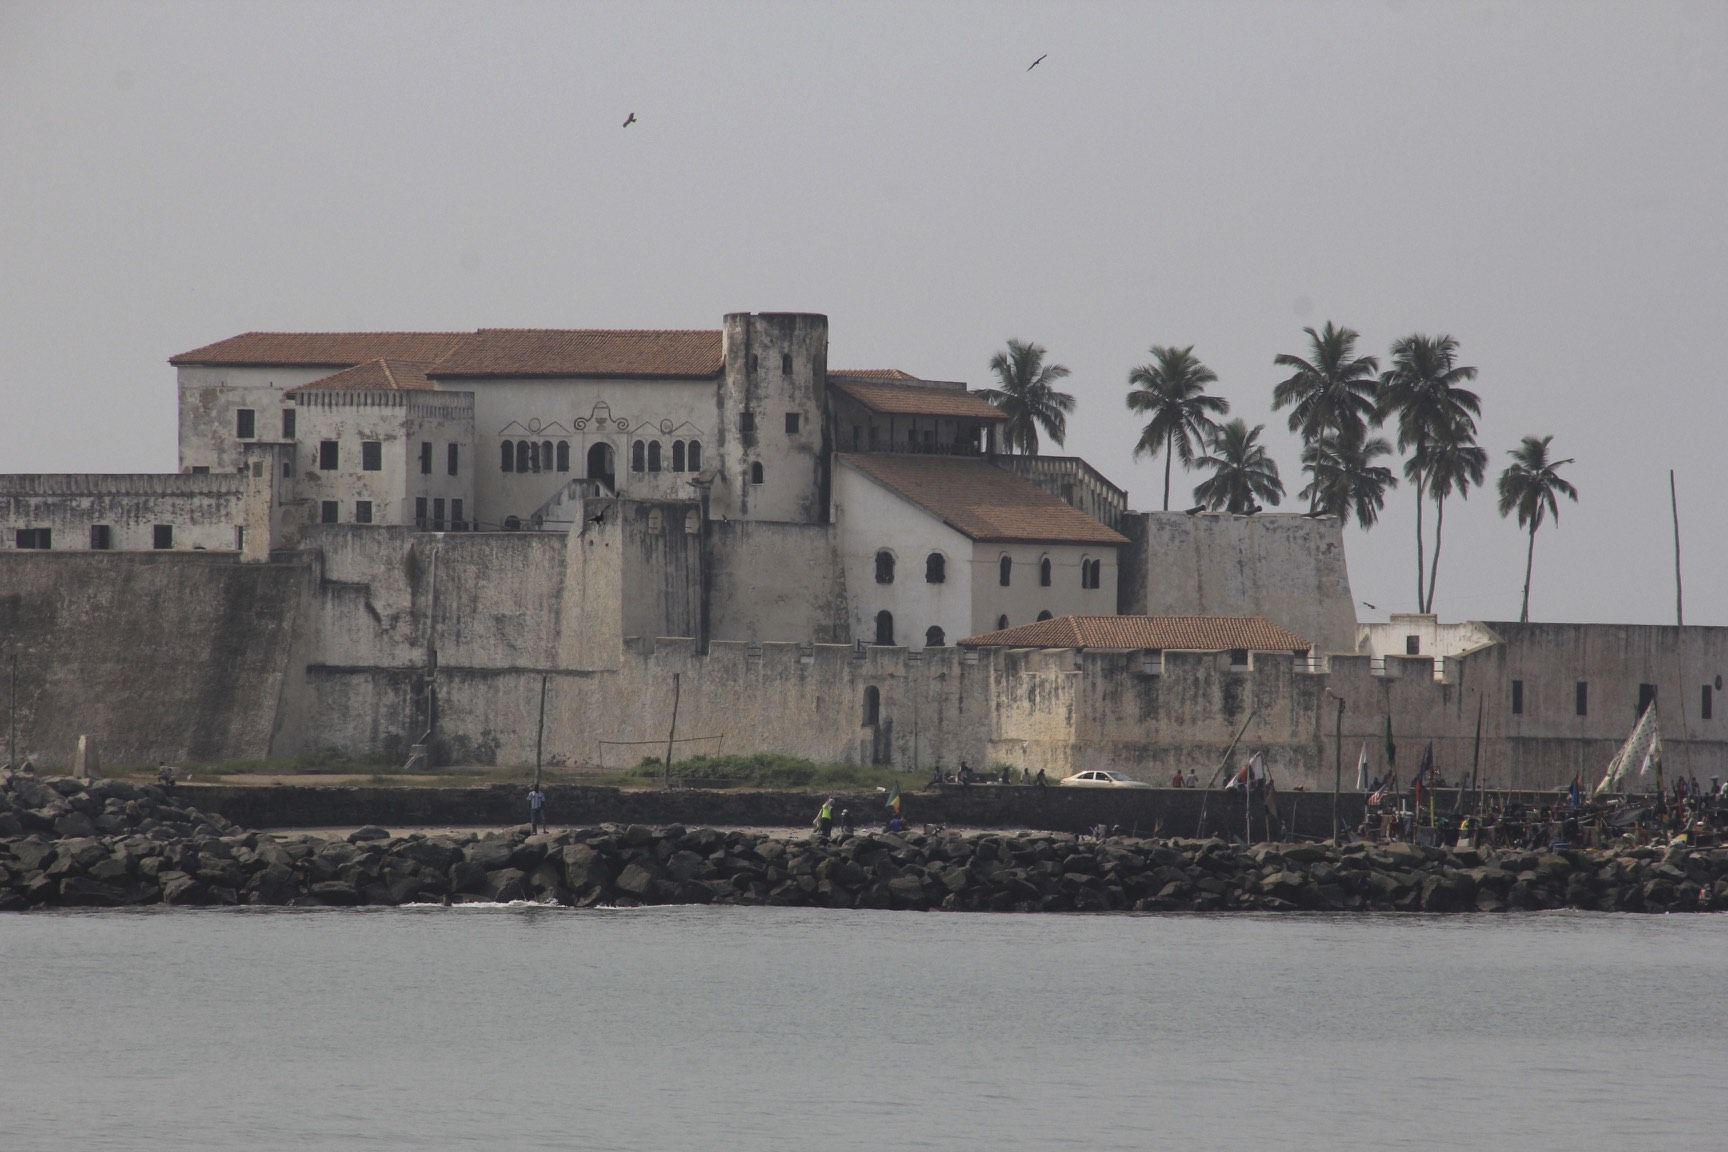 The Elmina slave castle built by the Portuguese in 1481